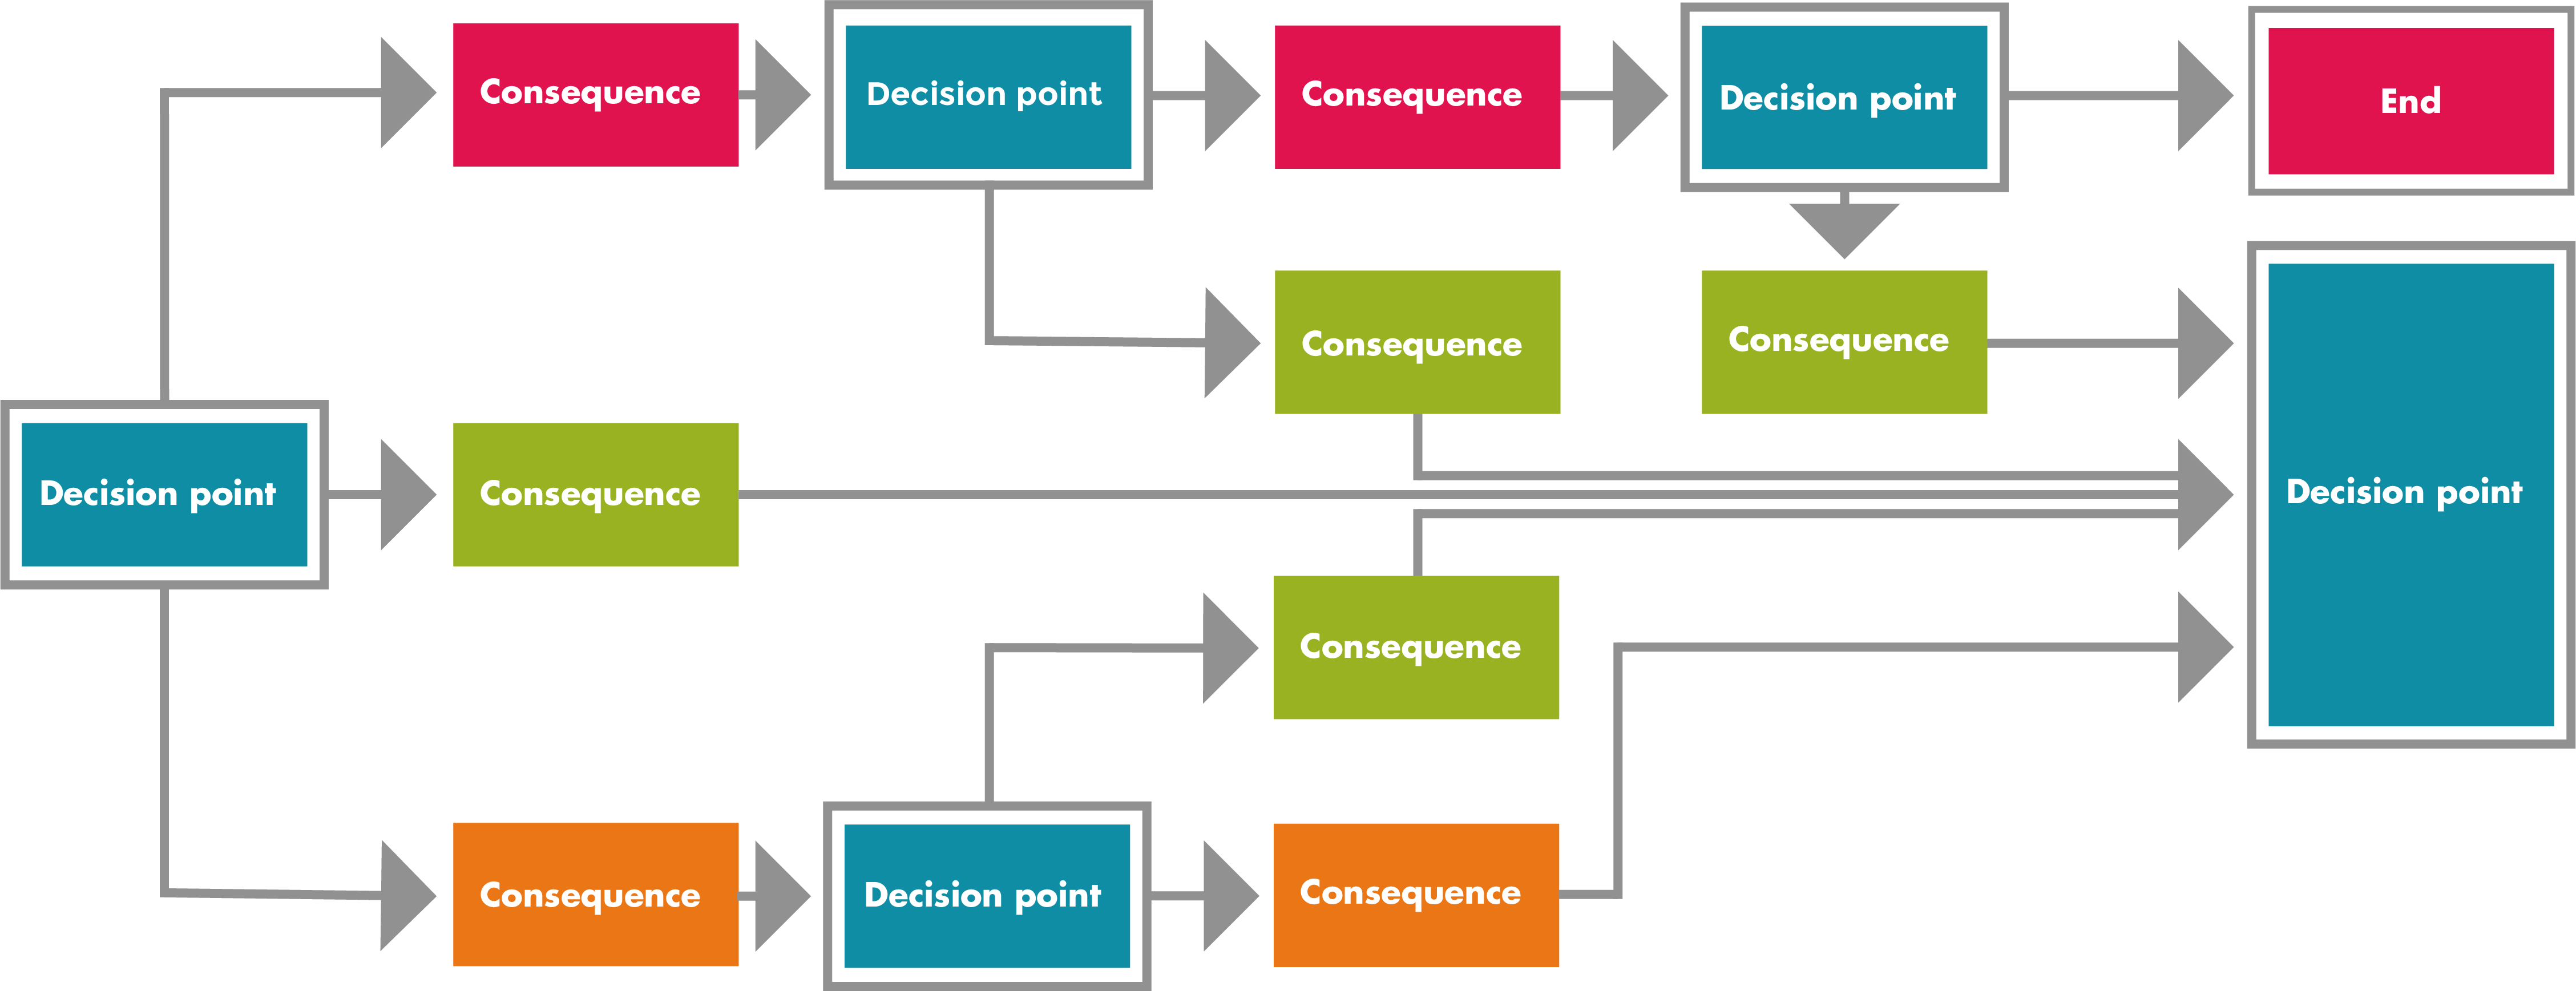 Example of eLearning branching scenario structure